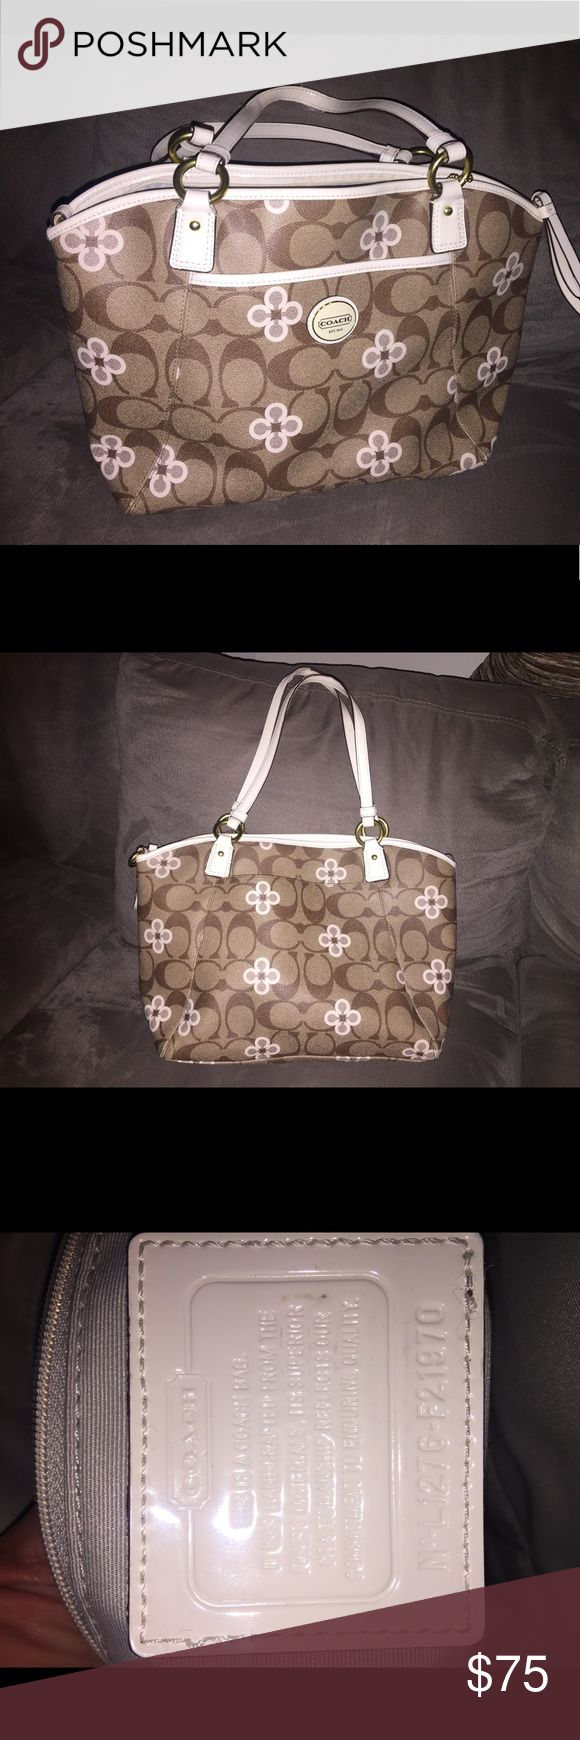 Medium size Coach tote Medium sized Coach tote.  Barely used.  No stains or scuffs.   Has pockets inside and out and comes with the shoulder strap.   Super cute! Coach Bags Totes